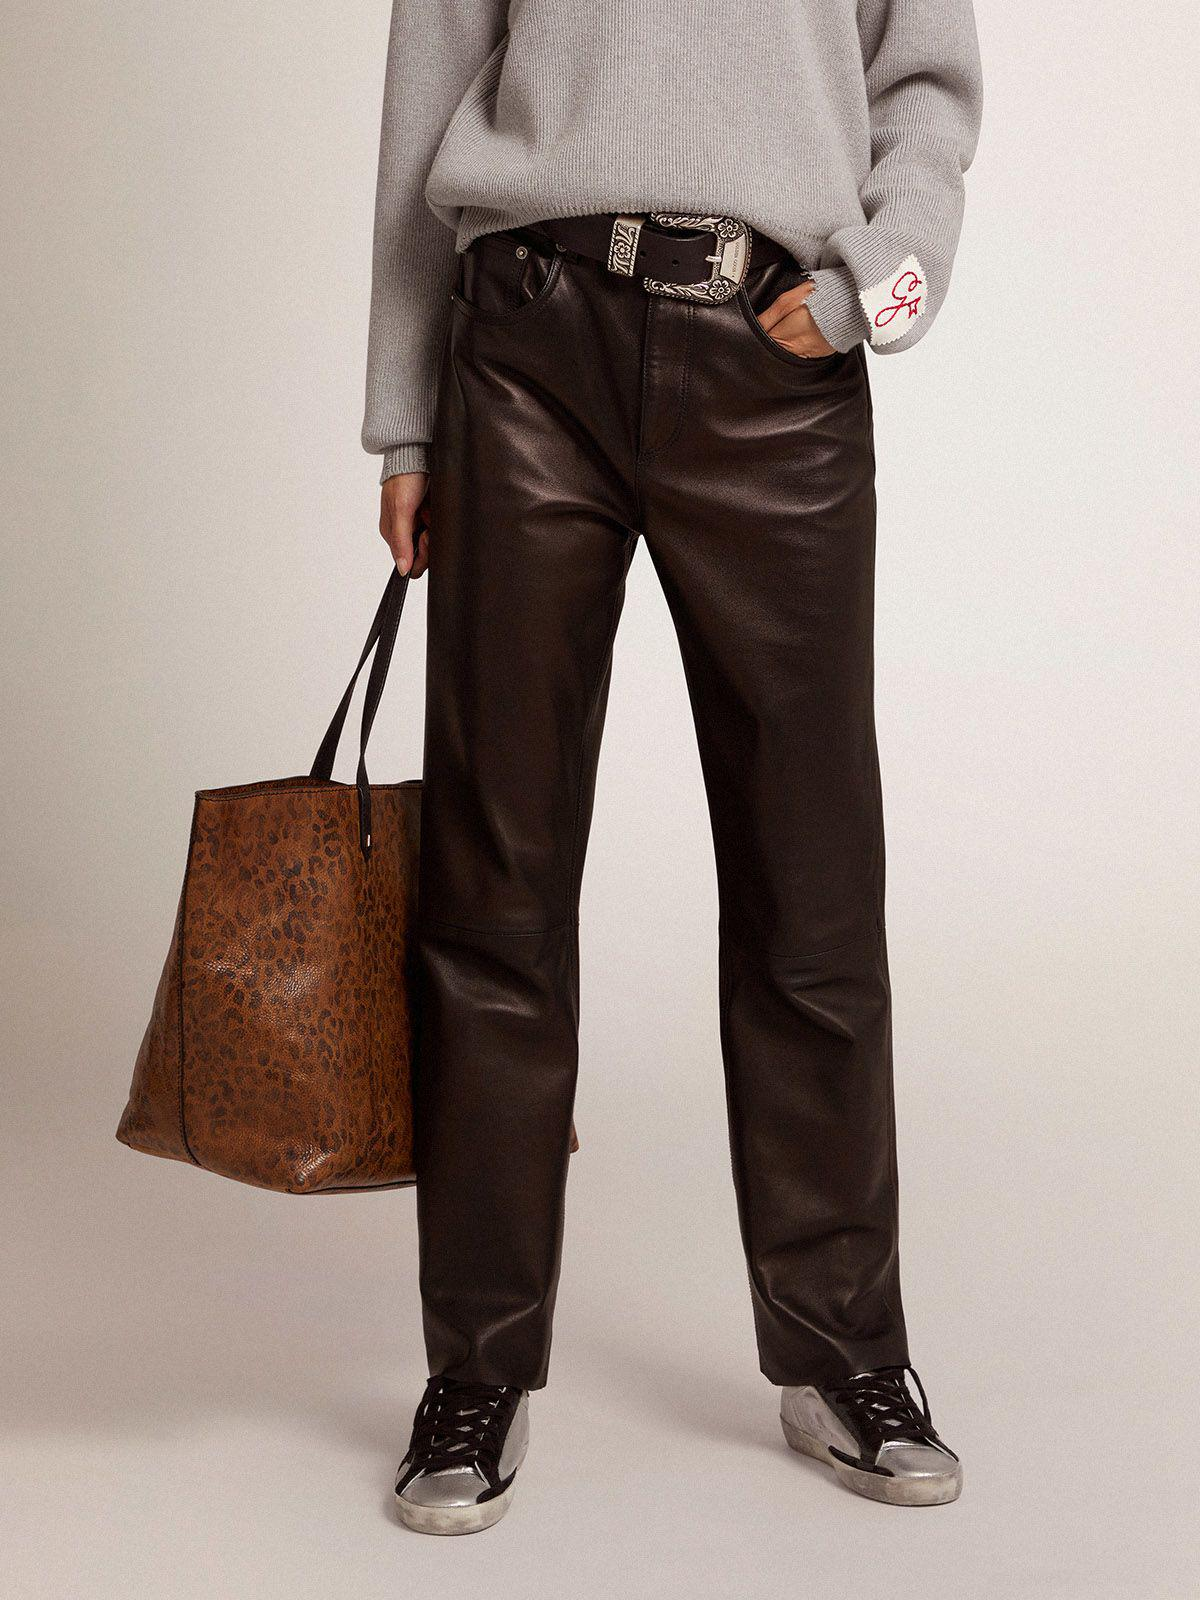 Golden Collection flared cropped pants in soft black nappa leather